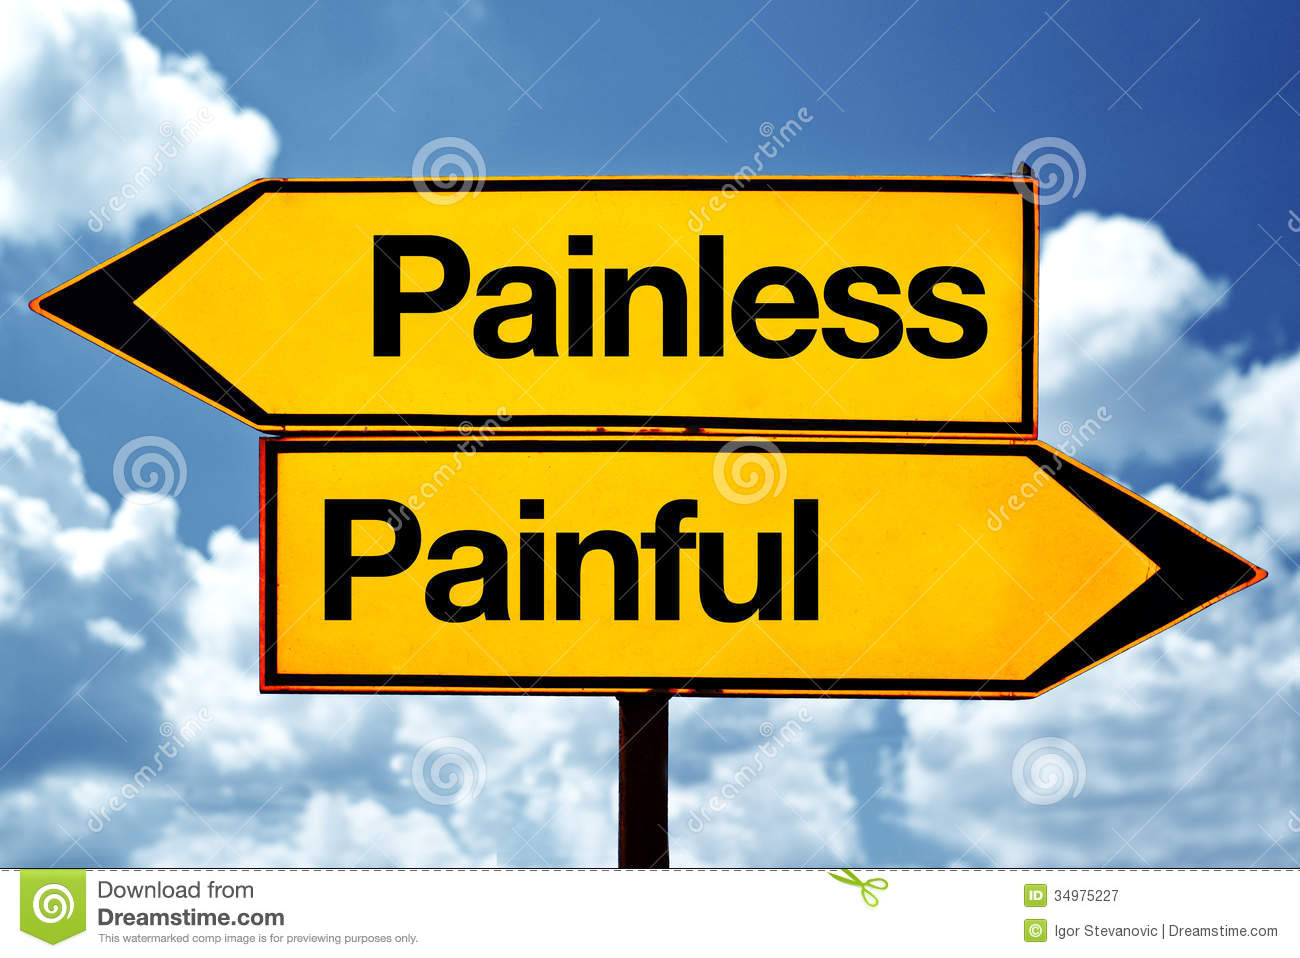 Painless Or Painful Royalty Free Stock Photography  Image. Hard Drive Recovery Data Html Email Hyperlink. Melrose Wakefield Oral Surgery. Best Website Design Templates. Leads For Life Insurance My Hands Sweat A Lot. Car Rental Jerusalem Israel Blue Web Sites. Mortgage Loan Information Arts Website Design. Communication Techniques For Couples. Microsoft Isa Server 2012 Master A Distancia